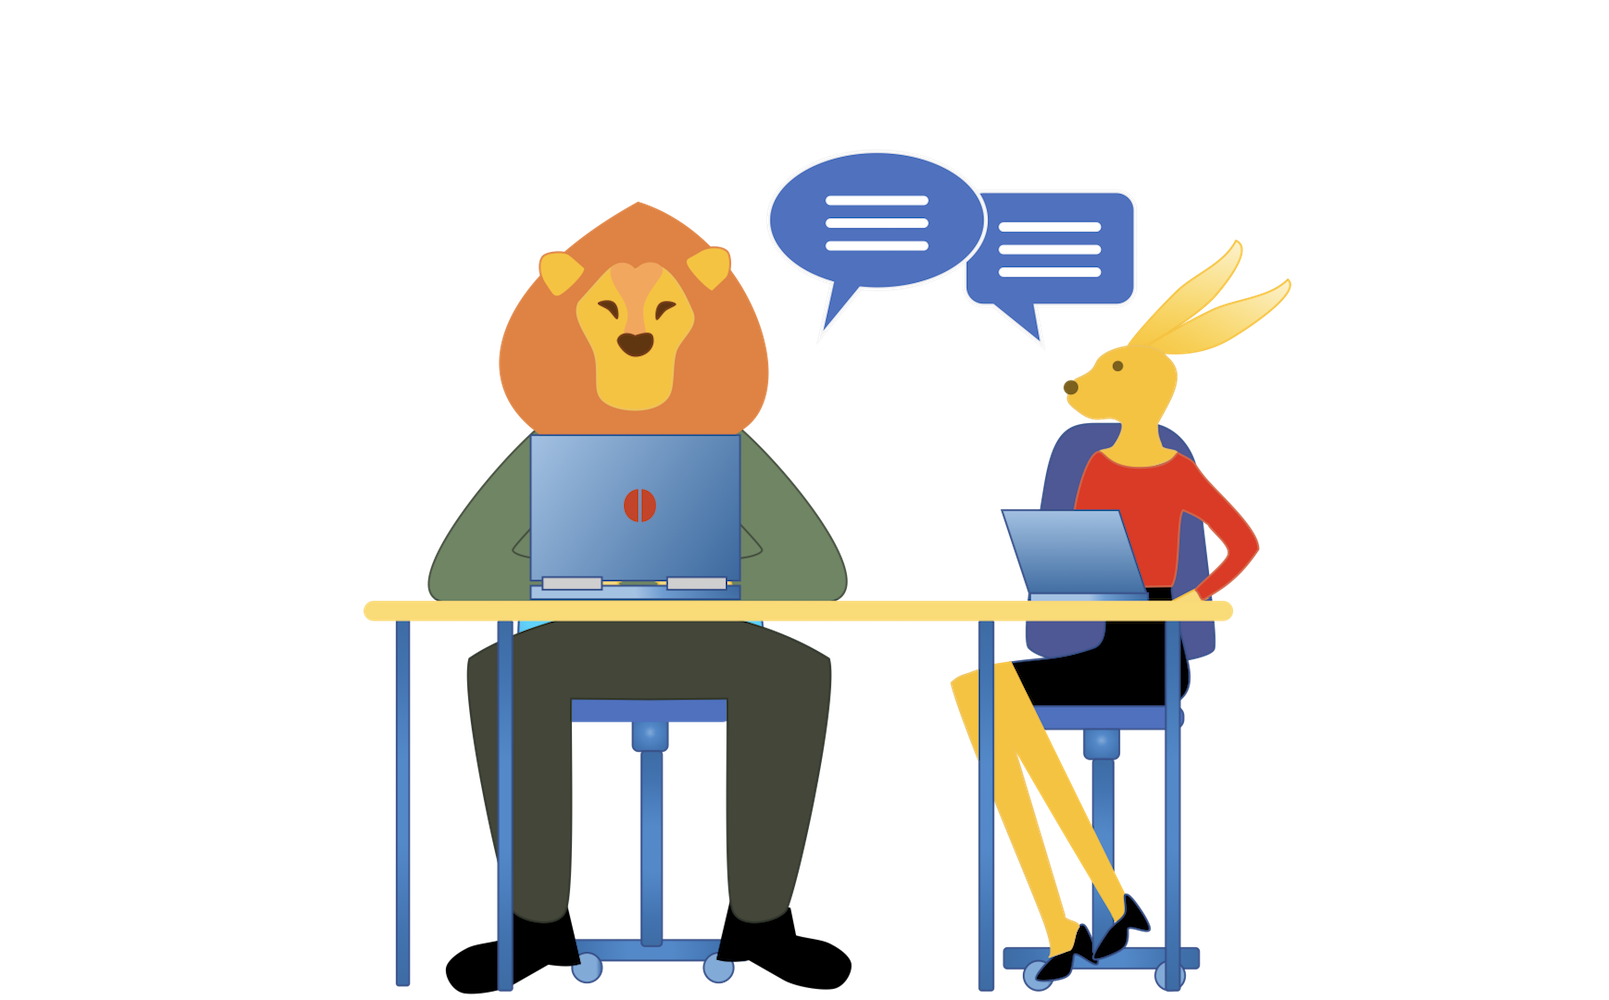 A female and a male sitting at a table in front of laptops and interchange.